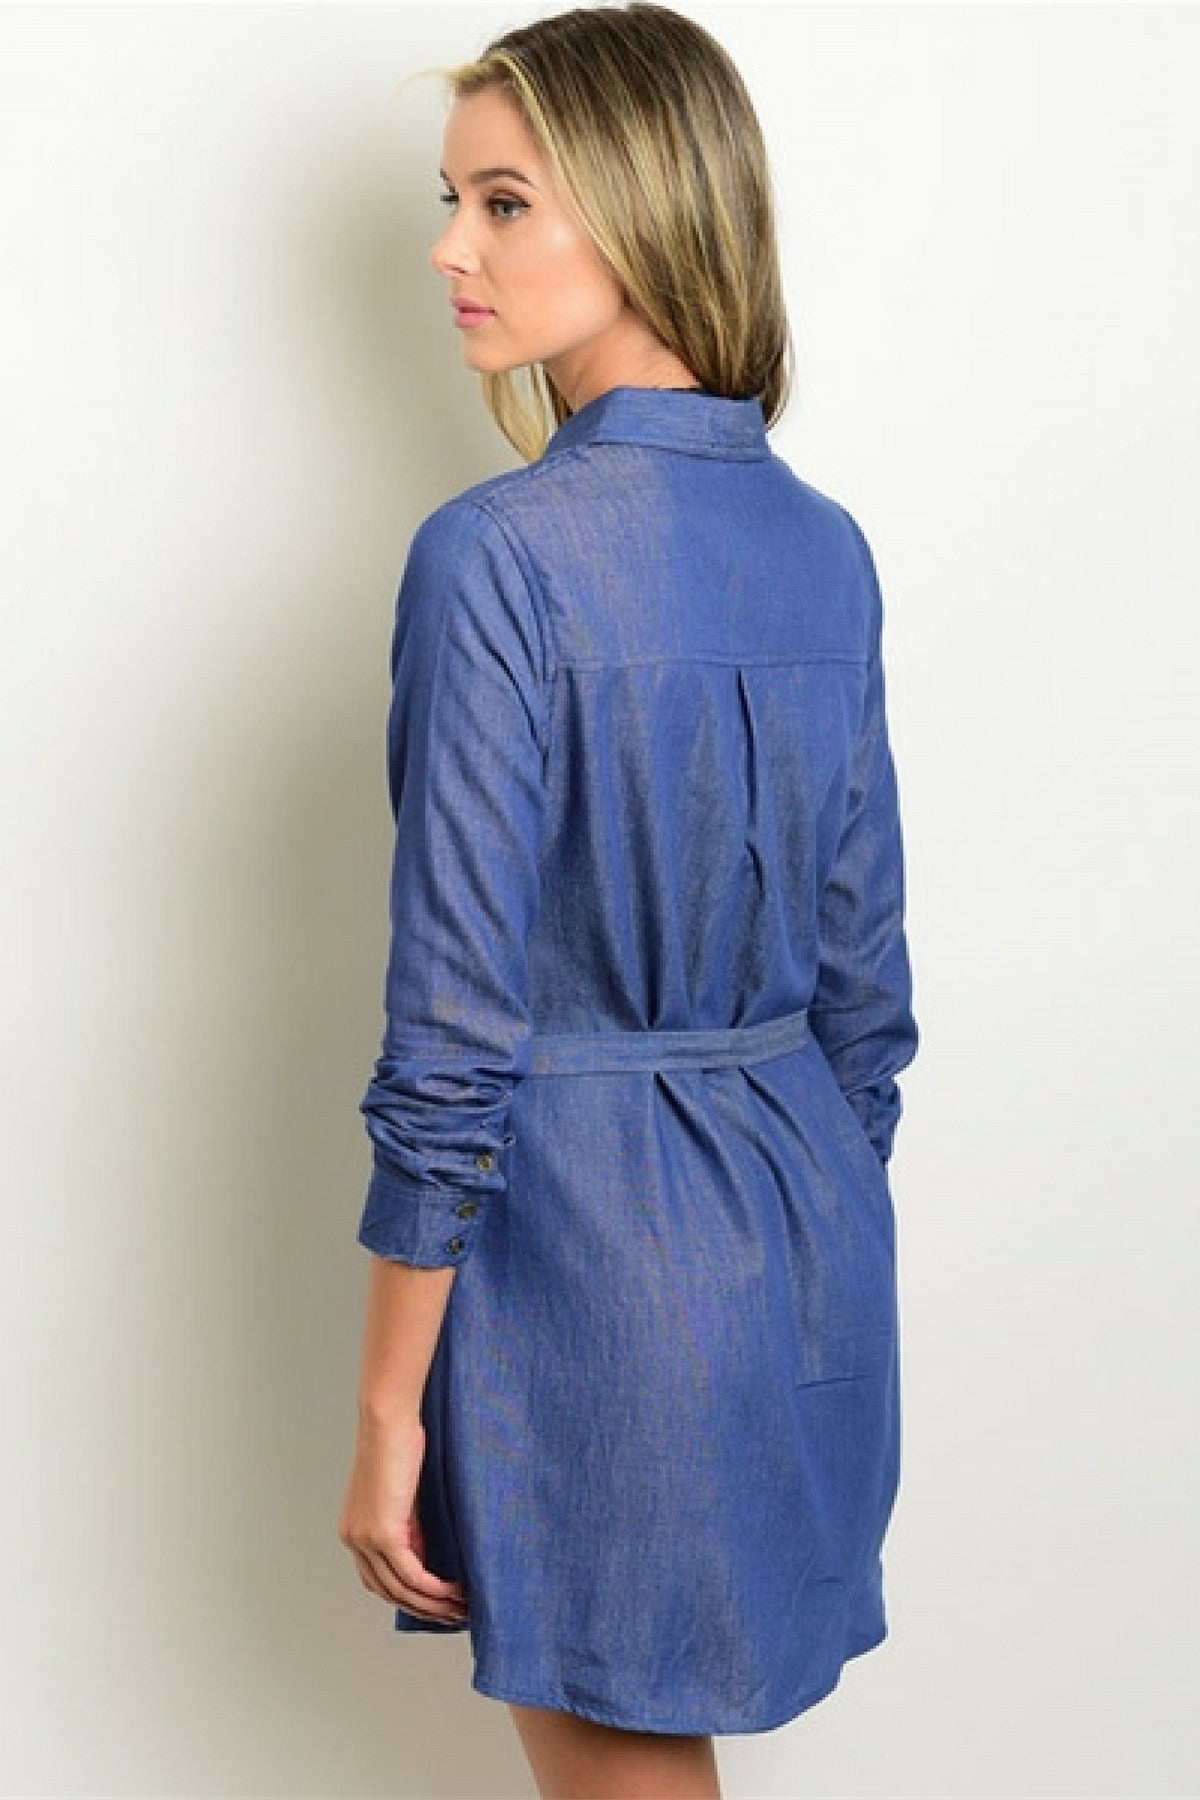 Denim Chambray Tie Dress - Leather and Sequins - 2